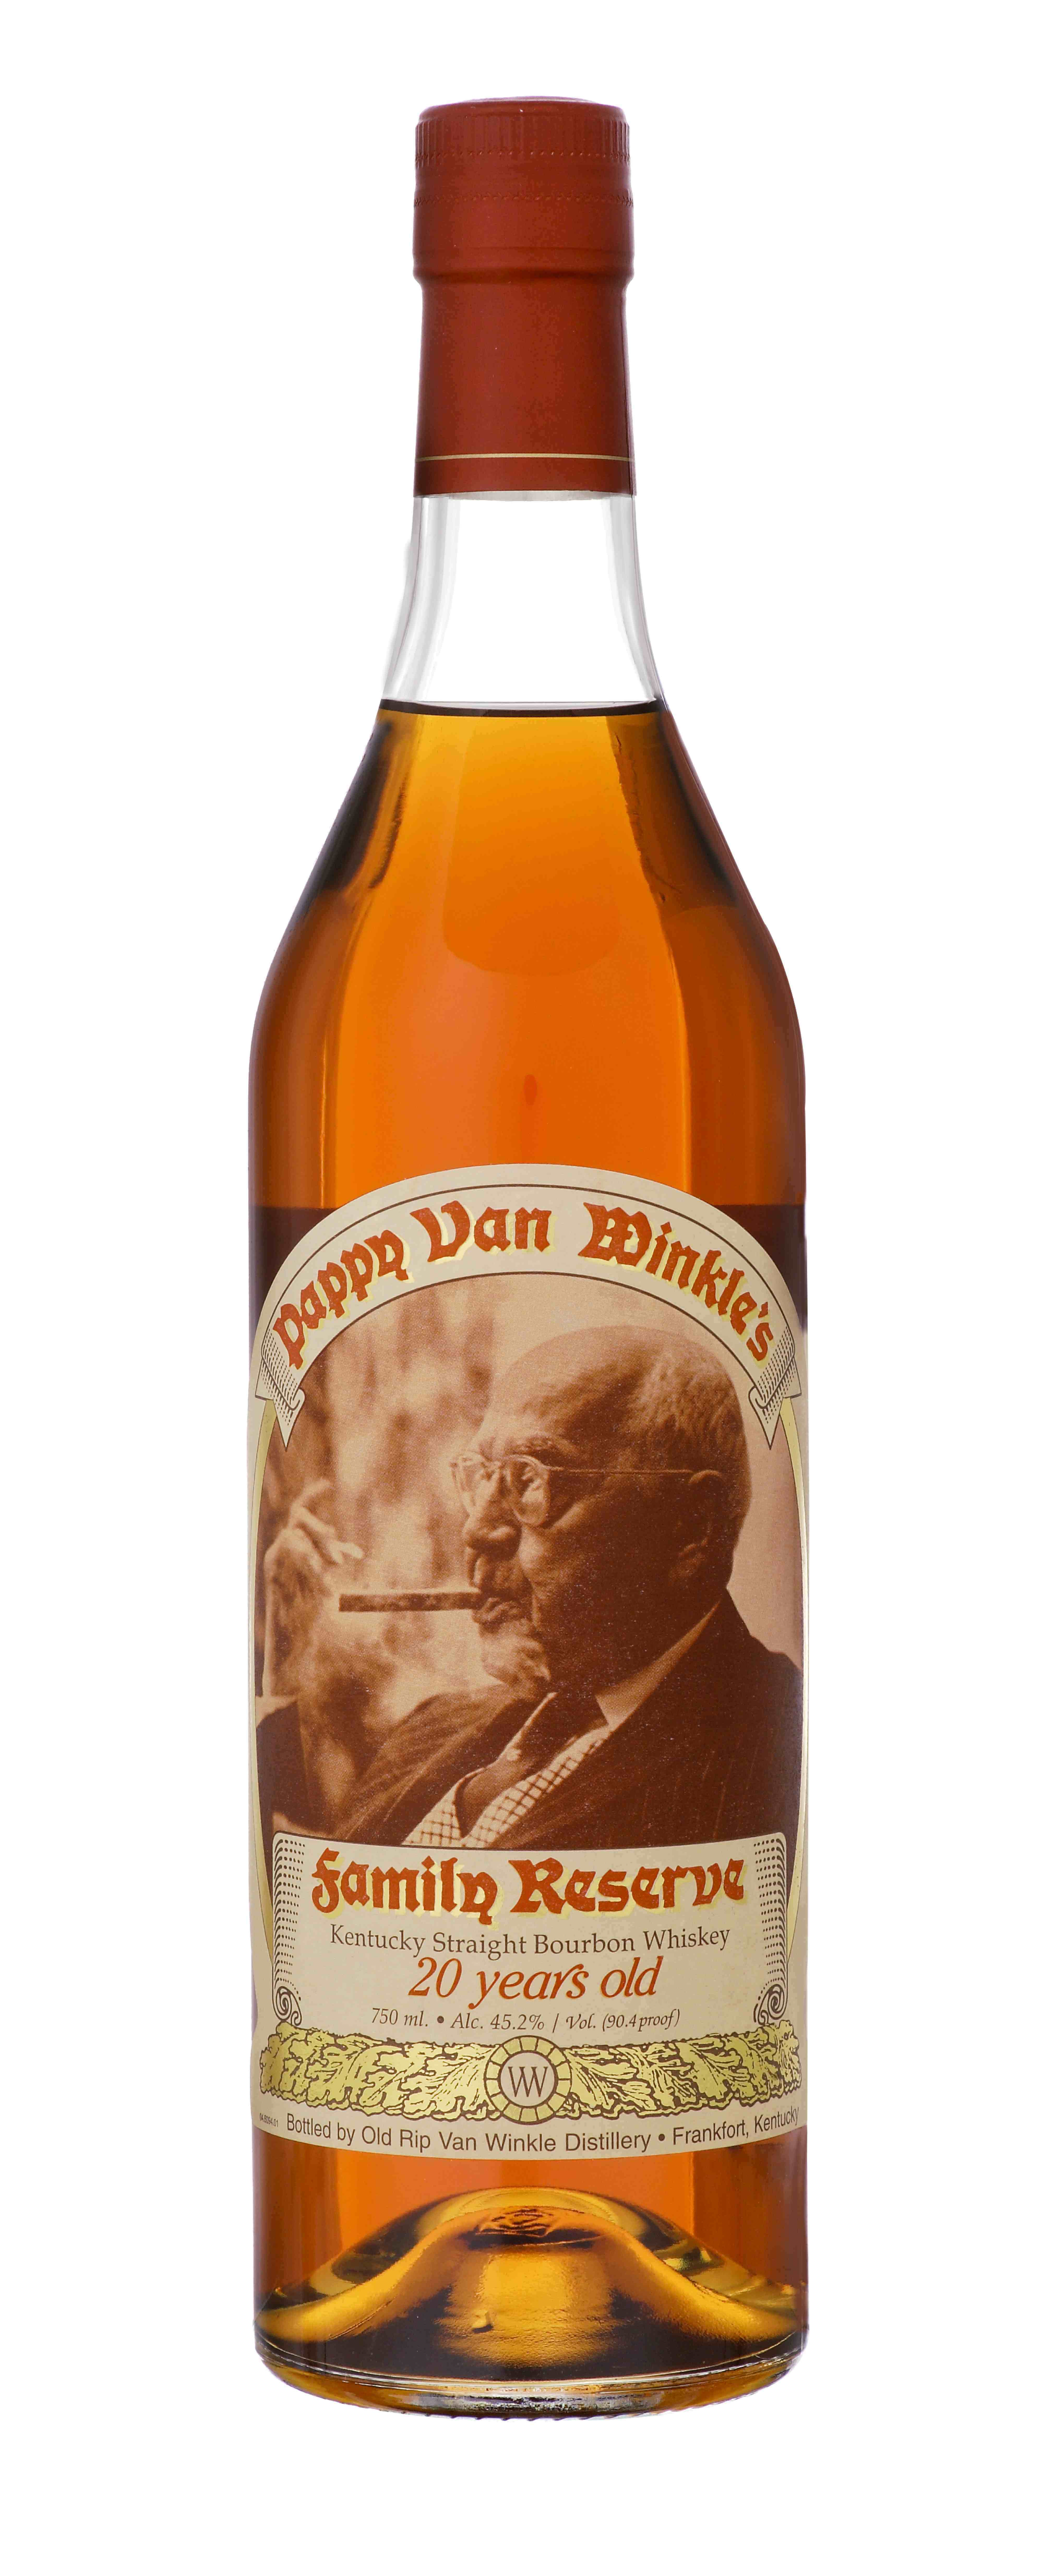 pappy van winkle archives fred minnick famous pappy van winkle label celebrates 20 years new developments in stolen pappy case